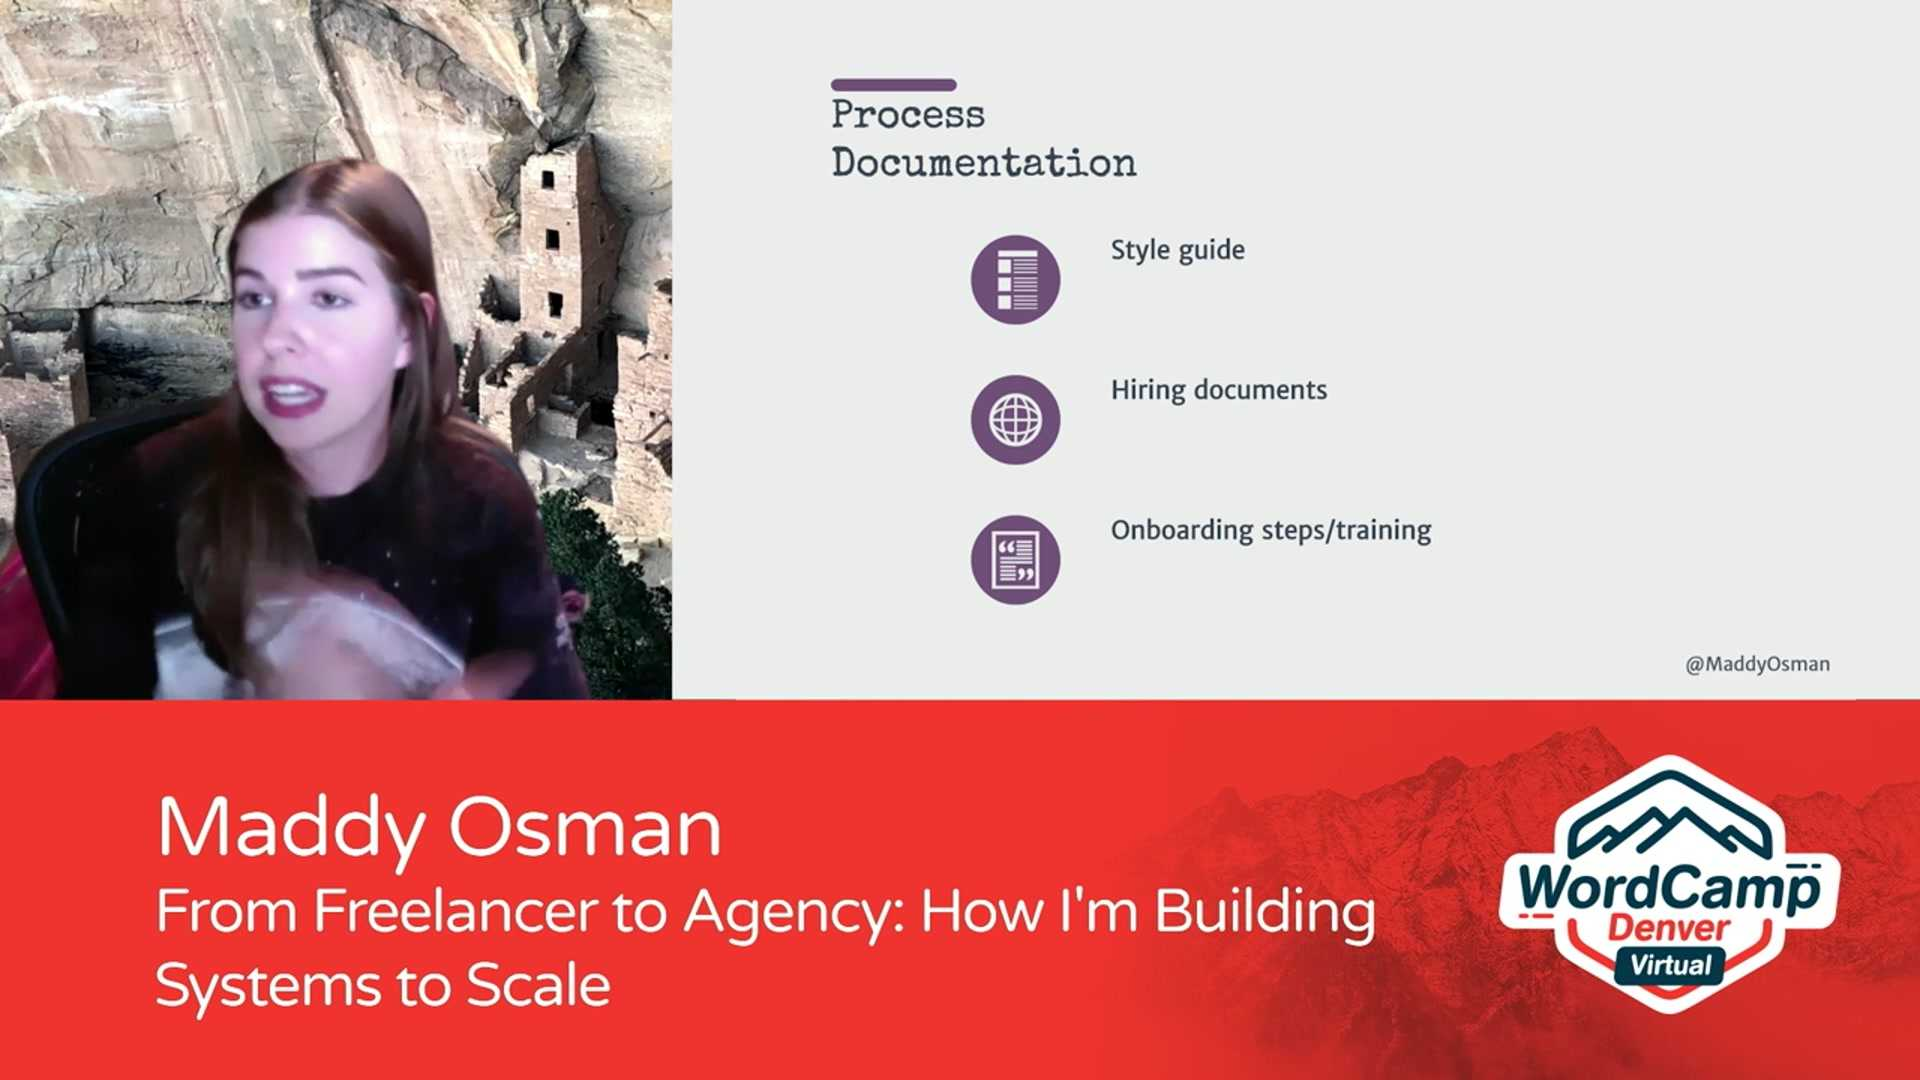 Maddy Osman: From Freelancer to Agency - How I'm Building Systems to Scale